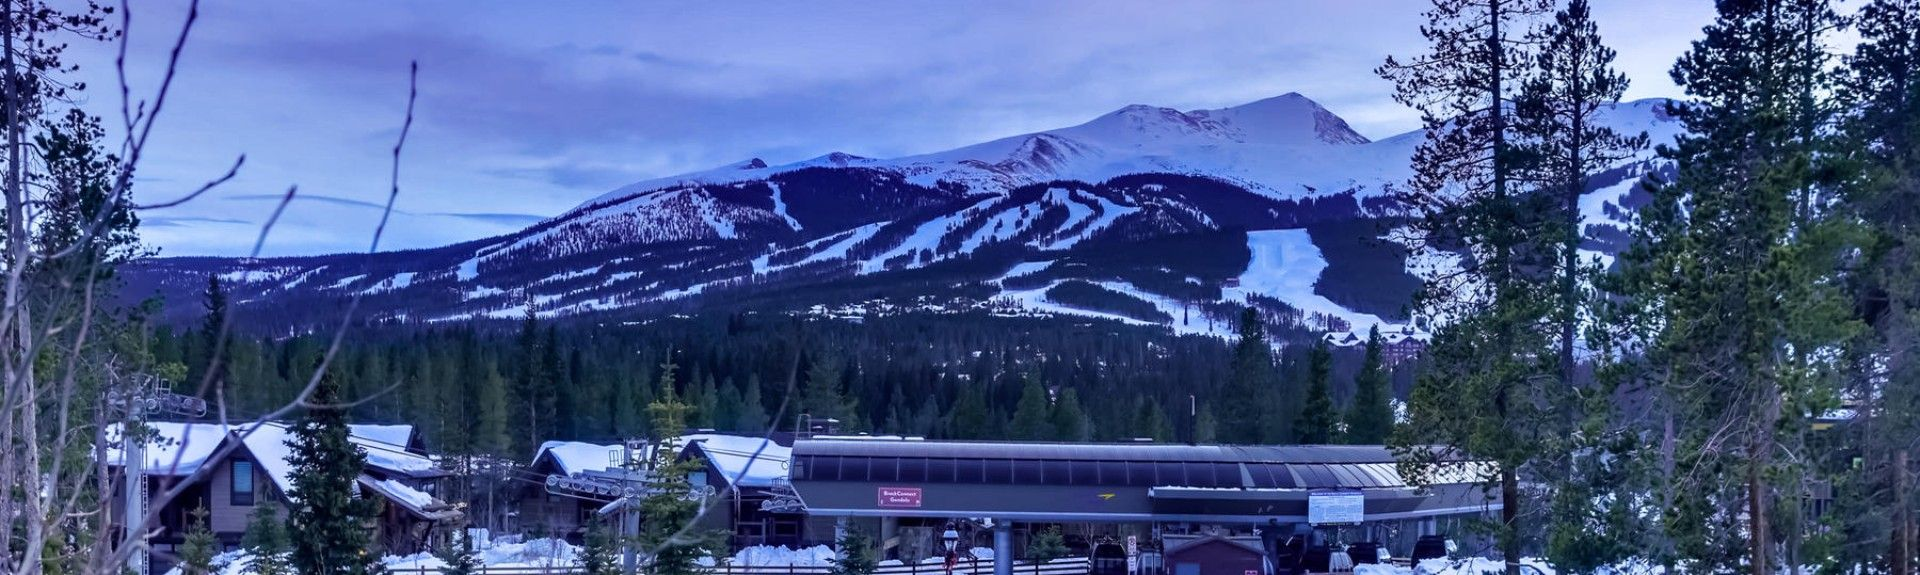 Shock Hill (Breckenridge, Colorado, Estados Unidos)